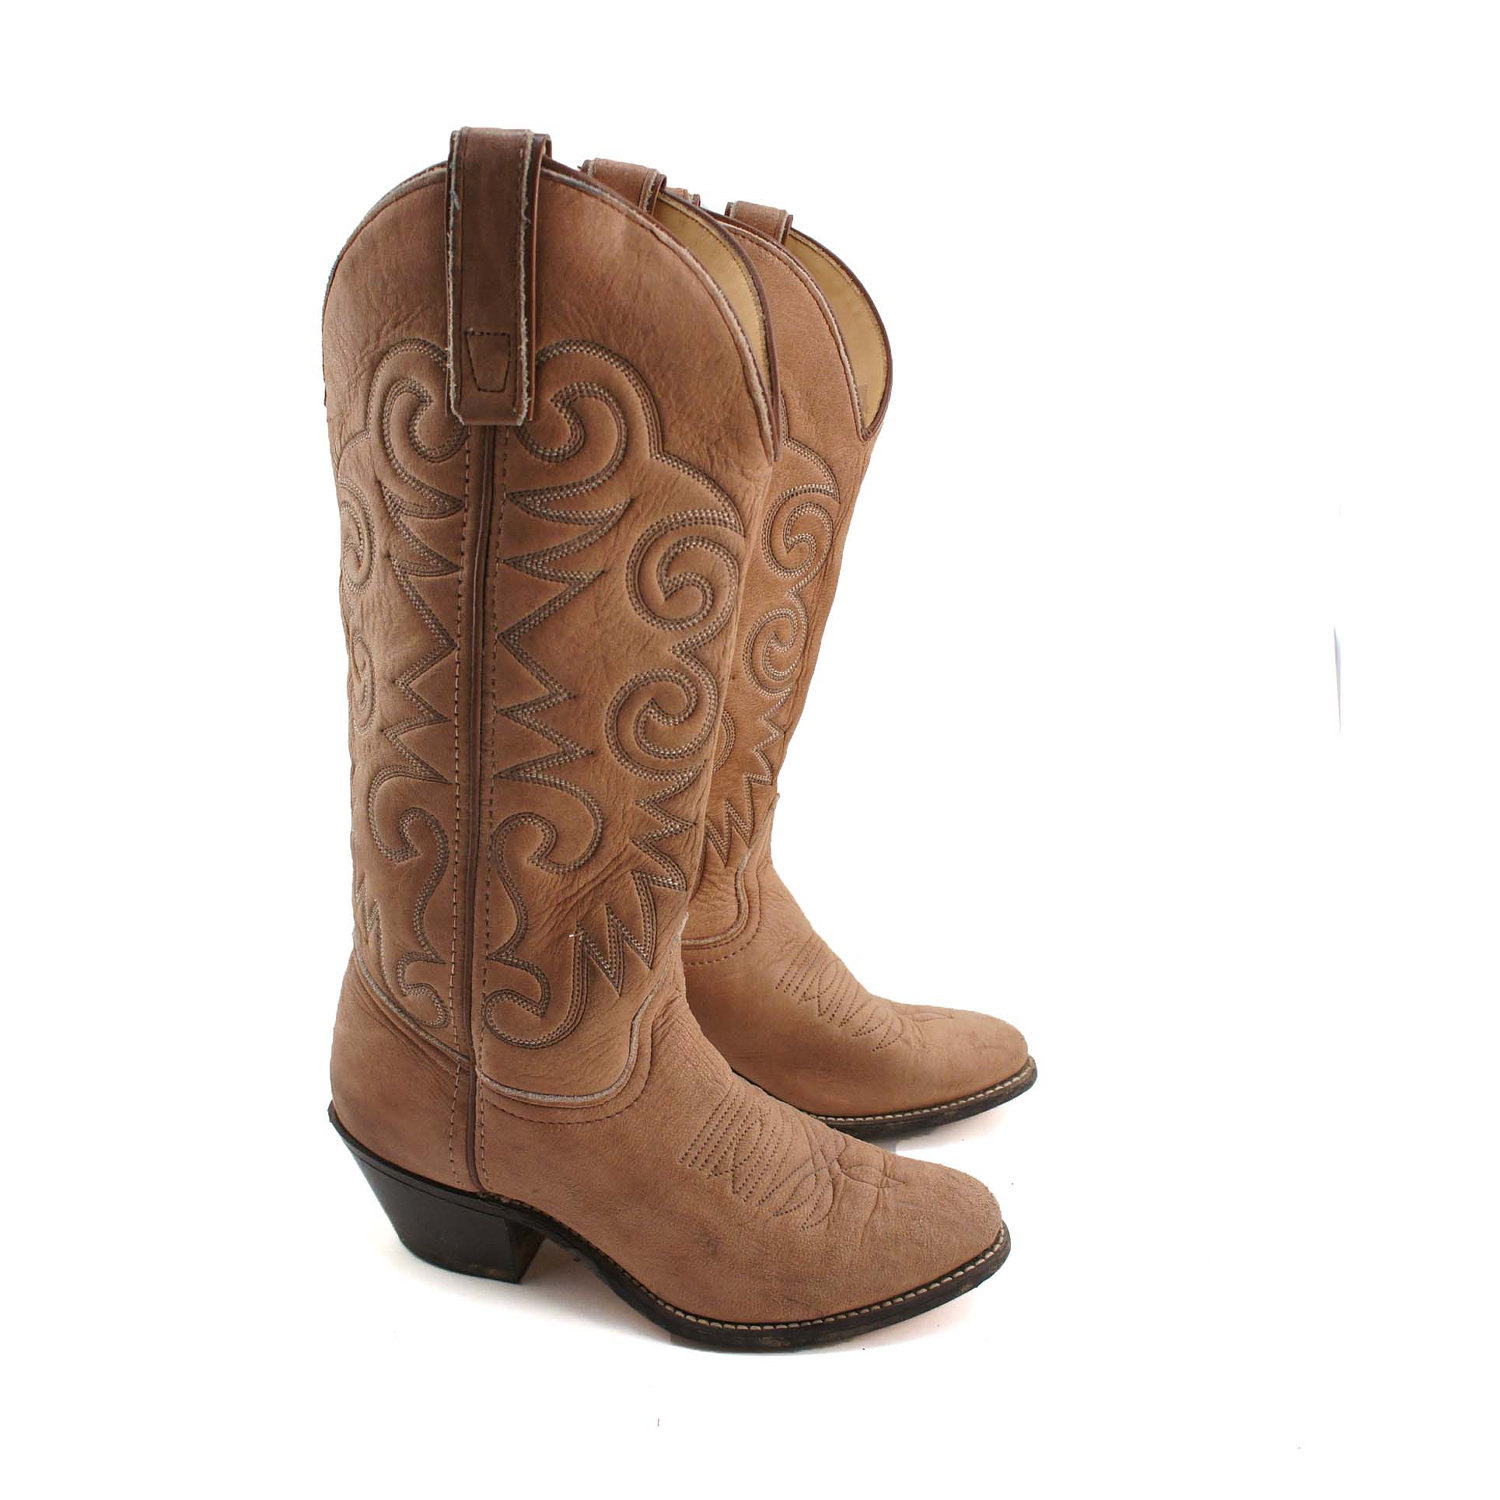 Brown Womens Cowboy Boots ZyR13n1t